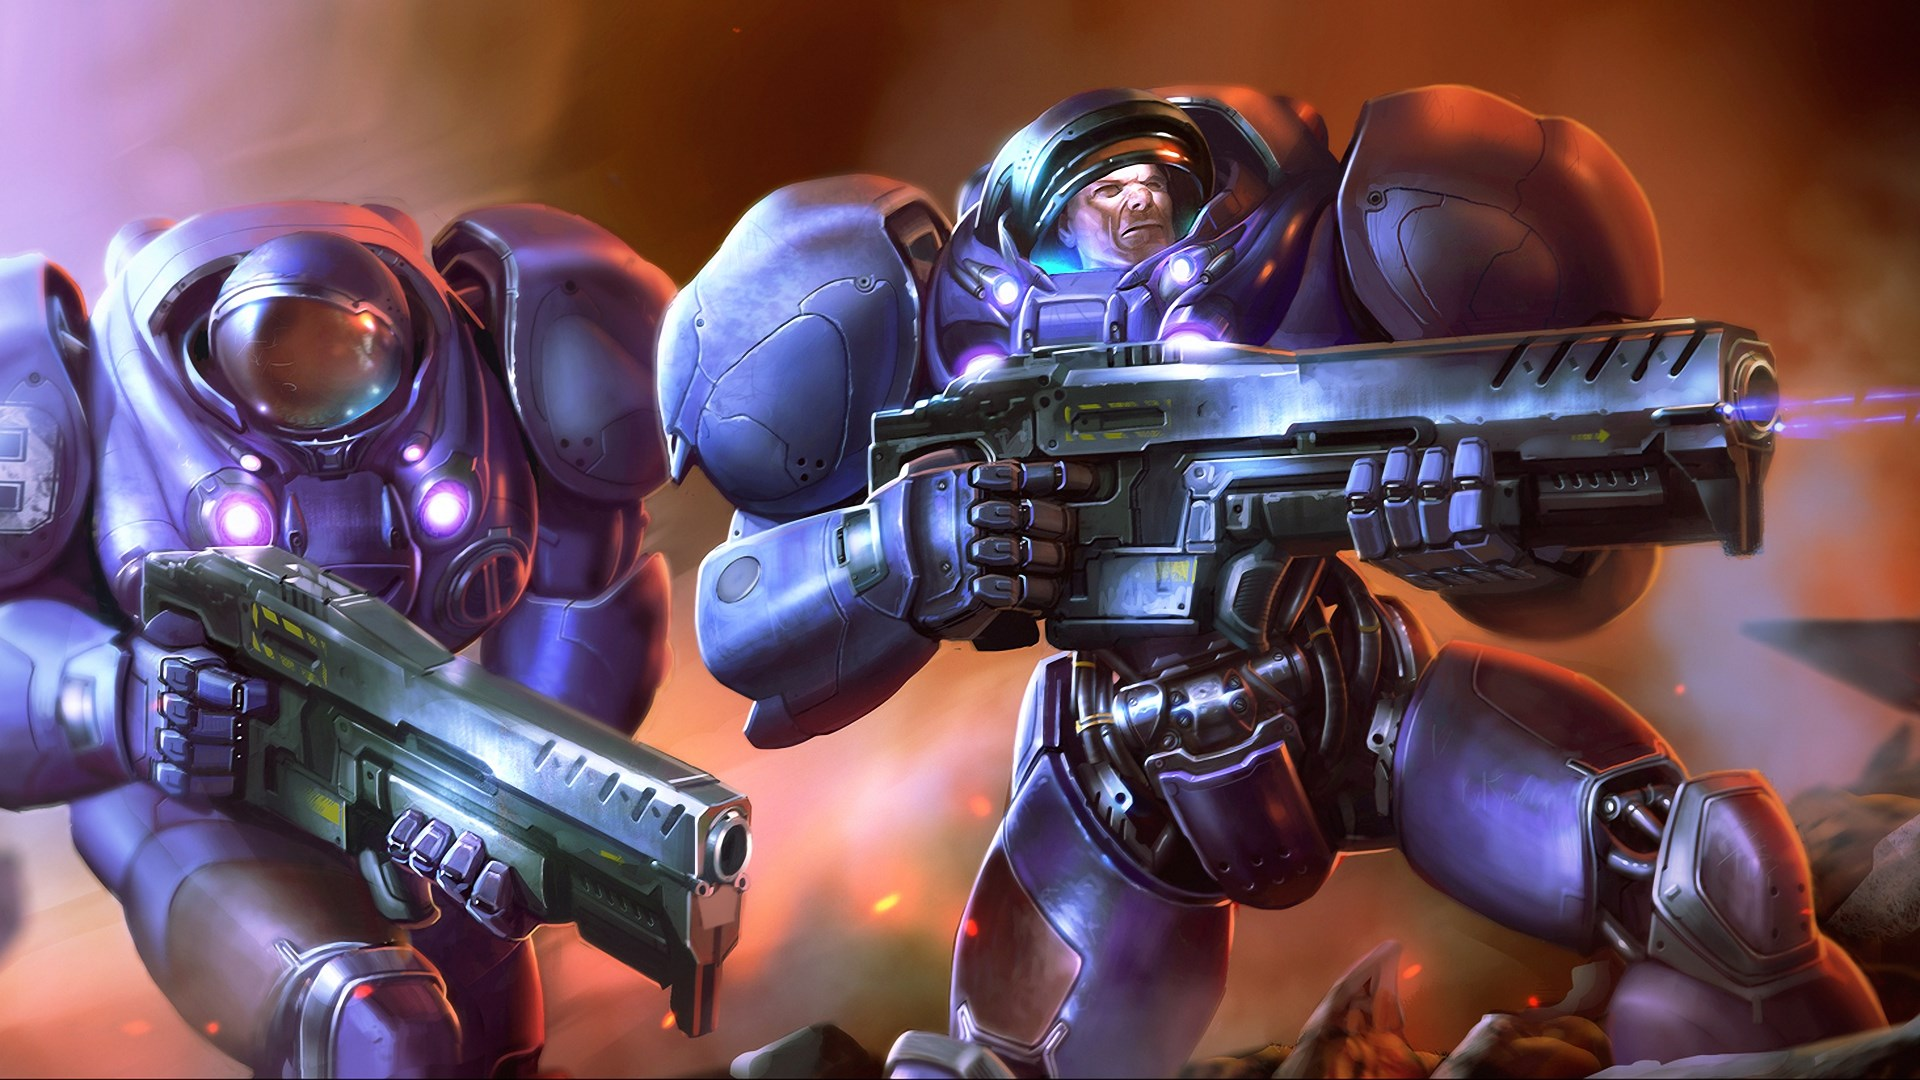 1920x1080-px-desktop-for-starcraft-by-Keshon-Chester-for-pocketfullofgrace-com-wallpaper-wp360844